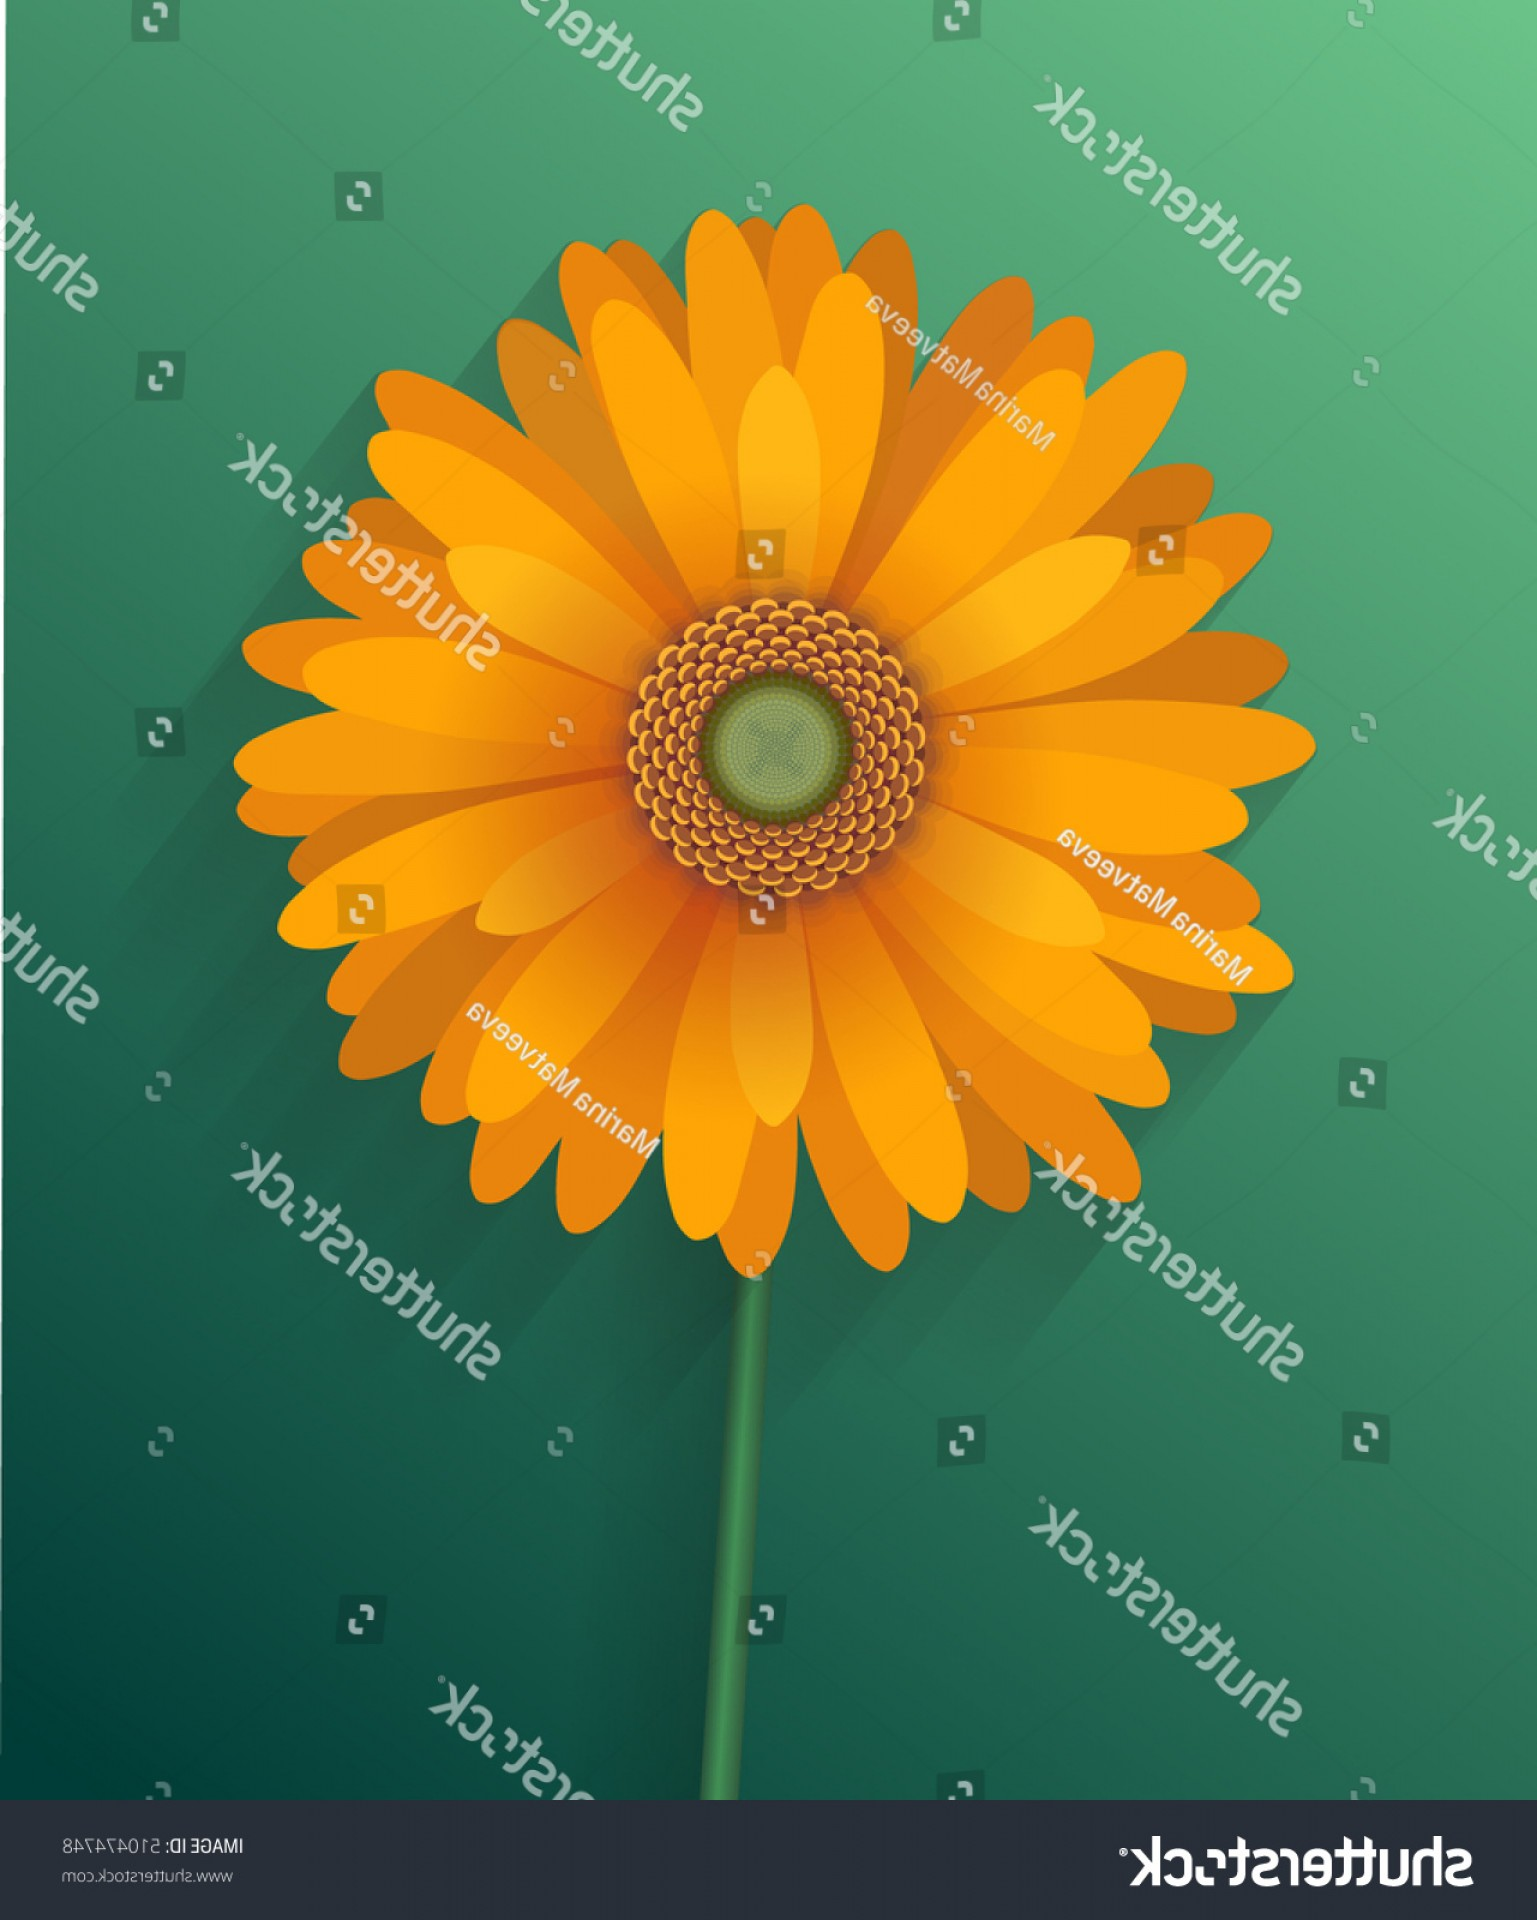 Orange Gerber Daisy Vector: Adorable Vector Illustration Orange Gerber Daisy On